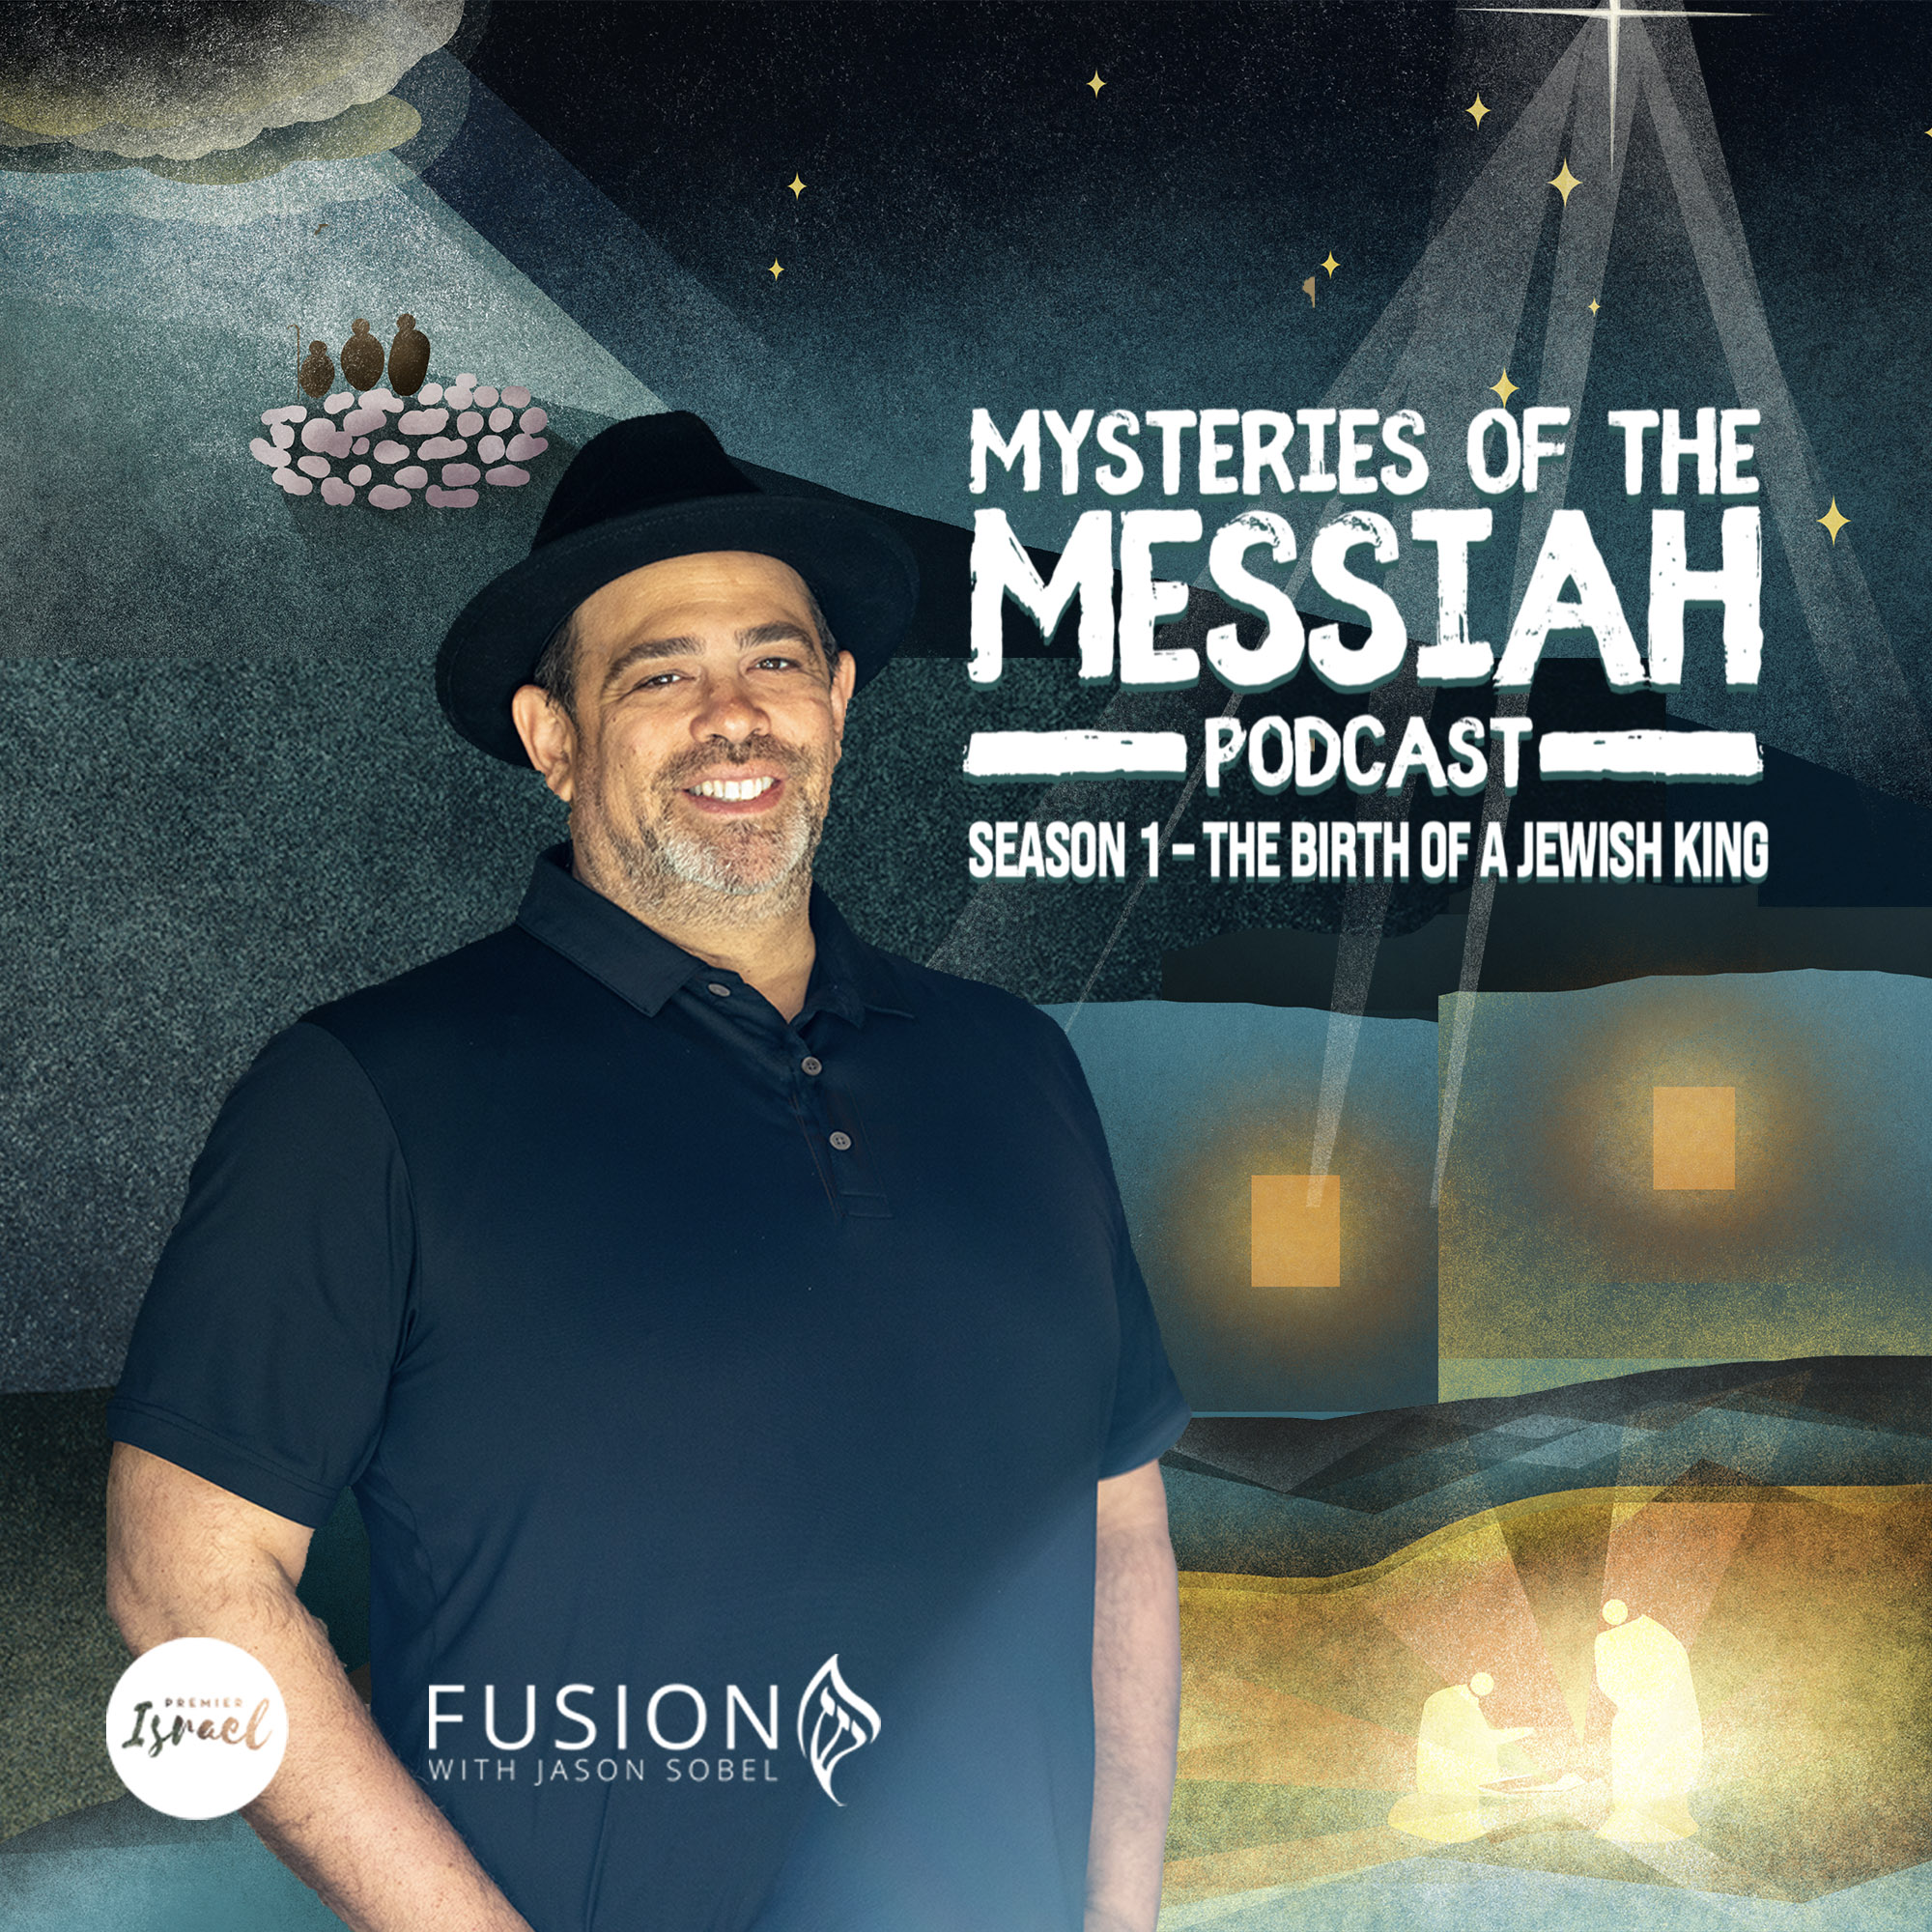 Mysteries of the Messiah: Birth of a Jewish King - Discovering the Messiah's Family DNA with Kathie Lee Gifford